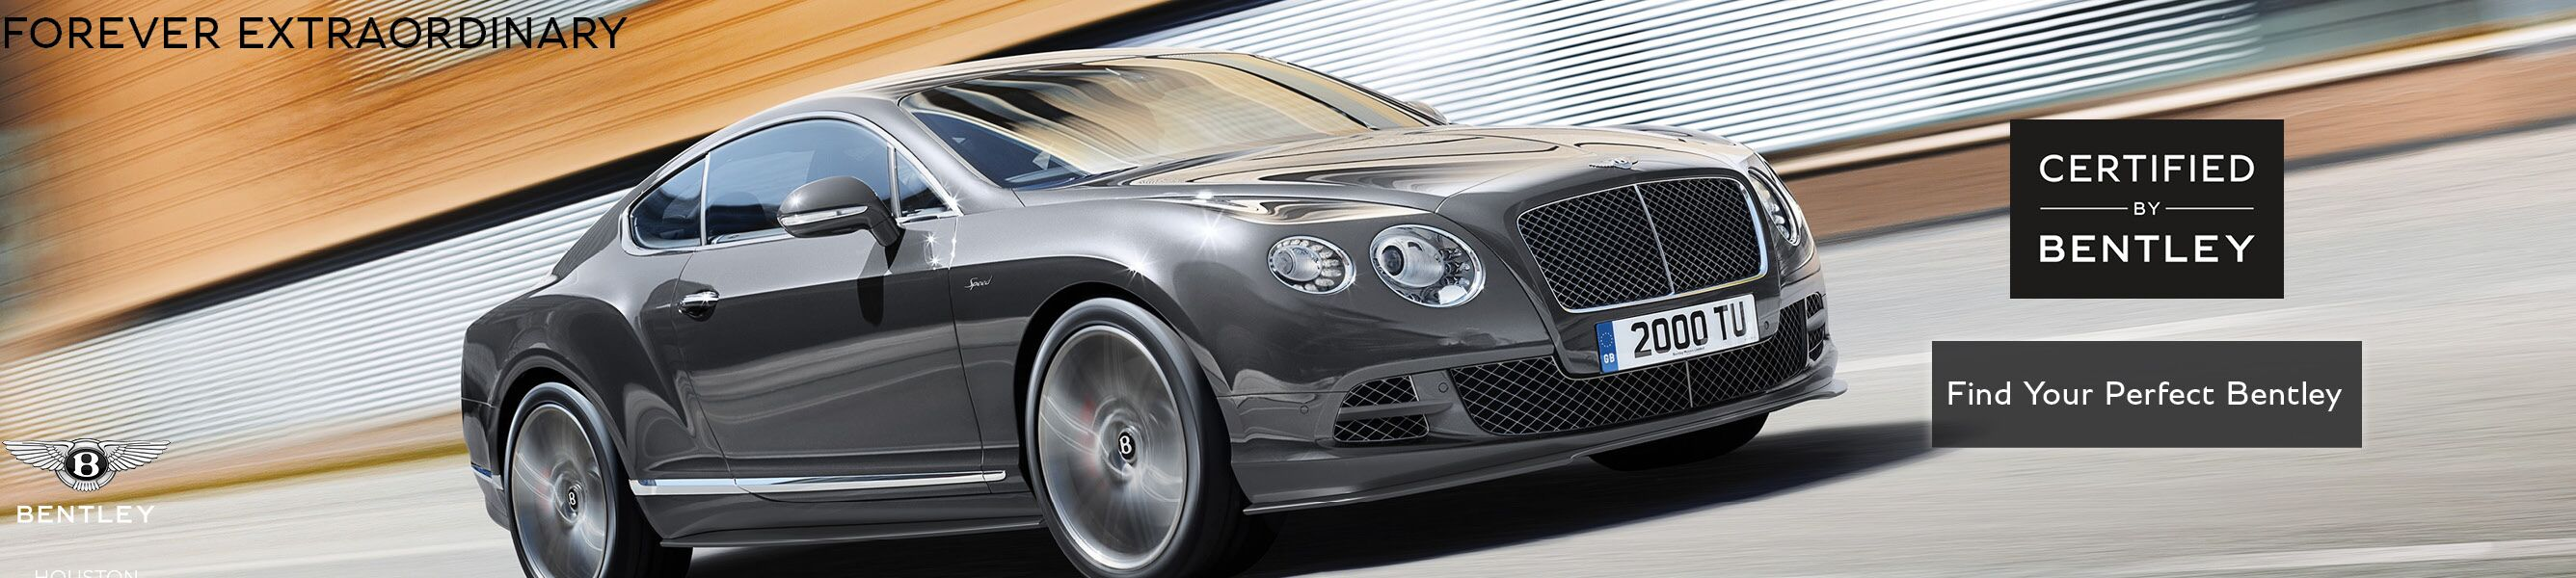 BENTLEY PREOWNED